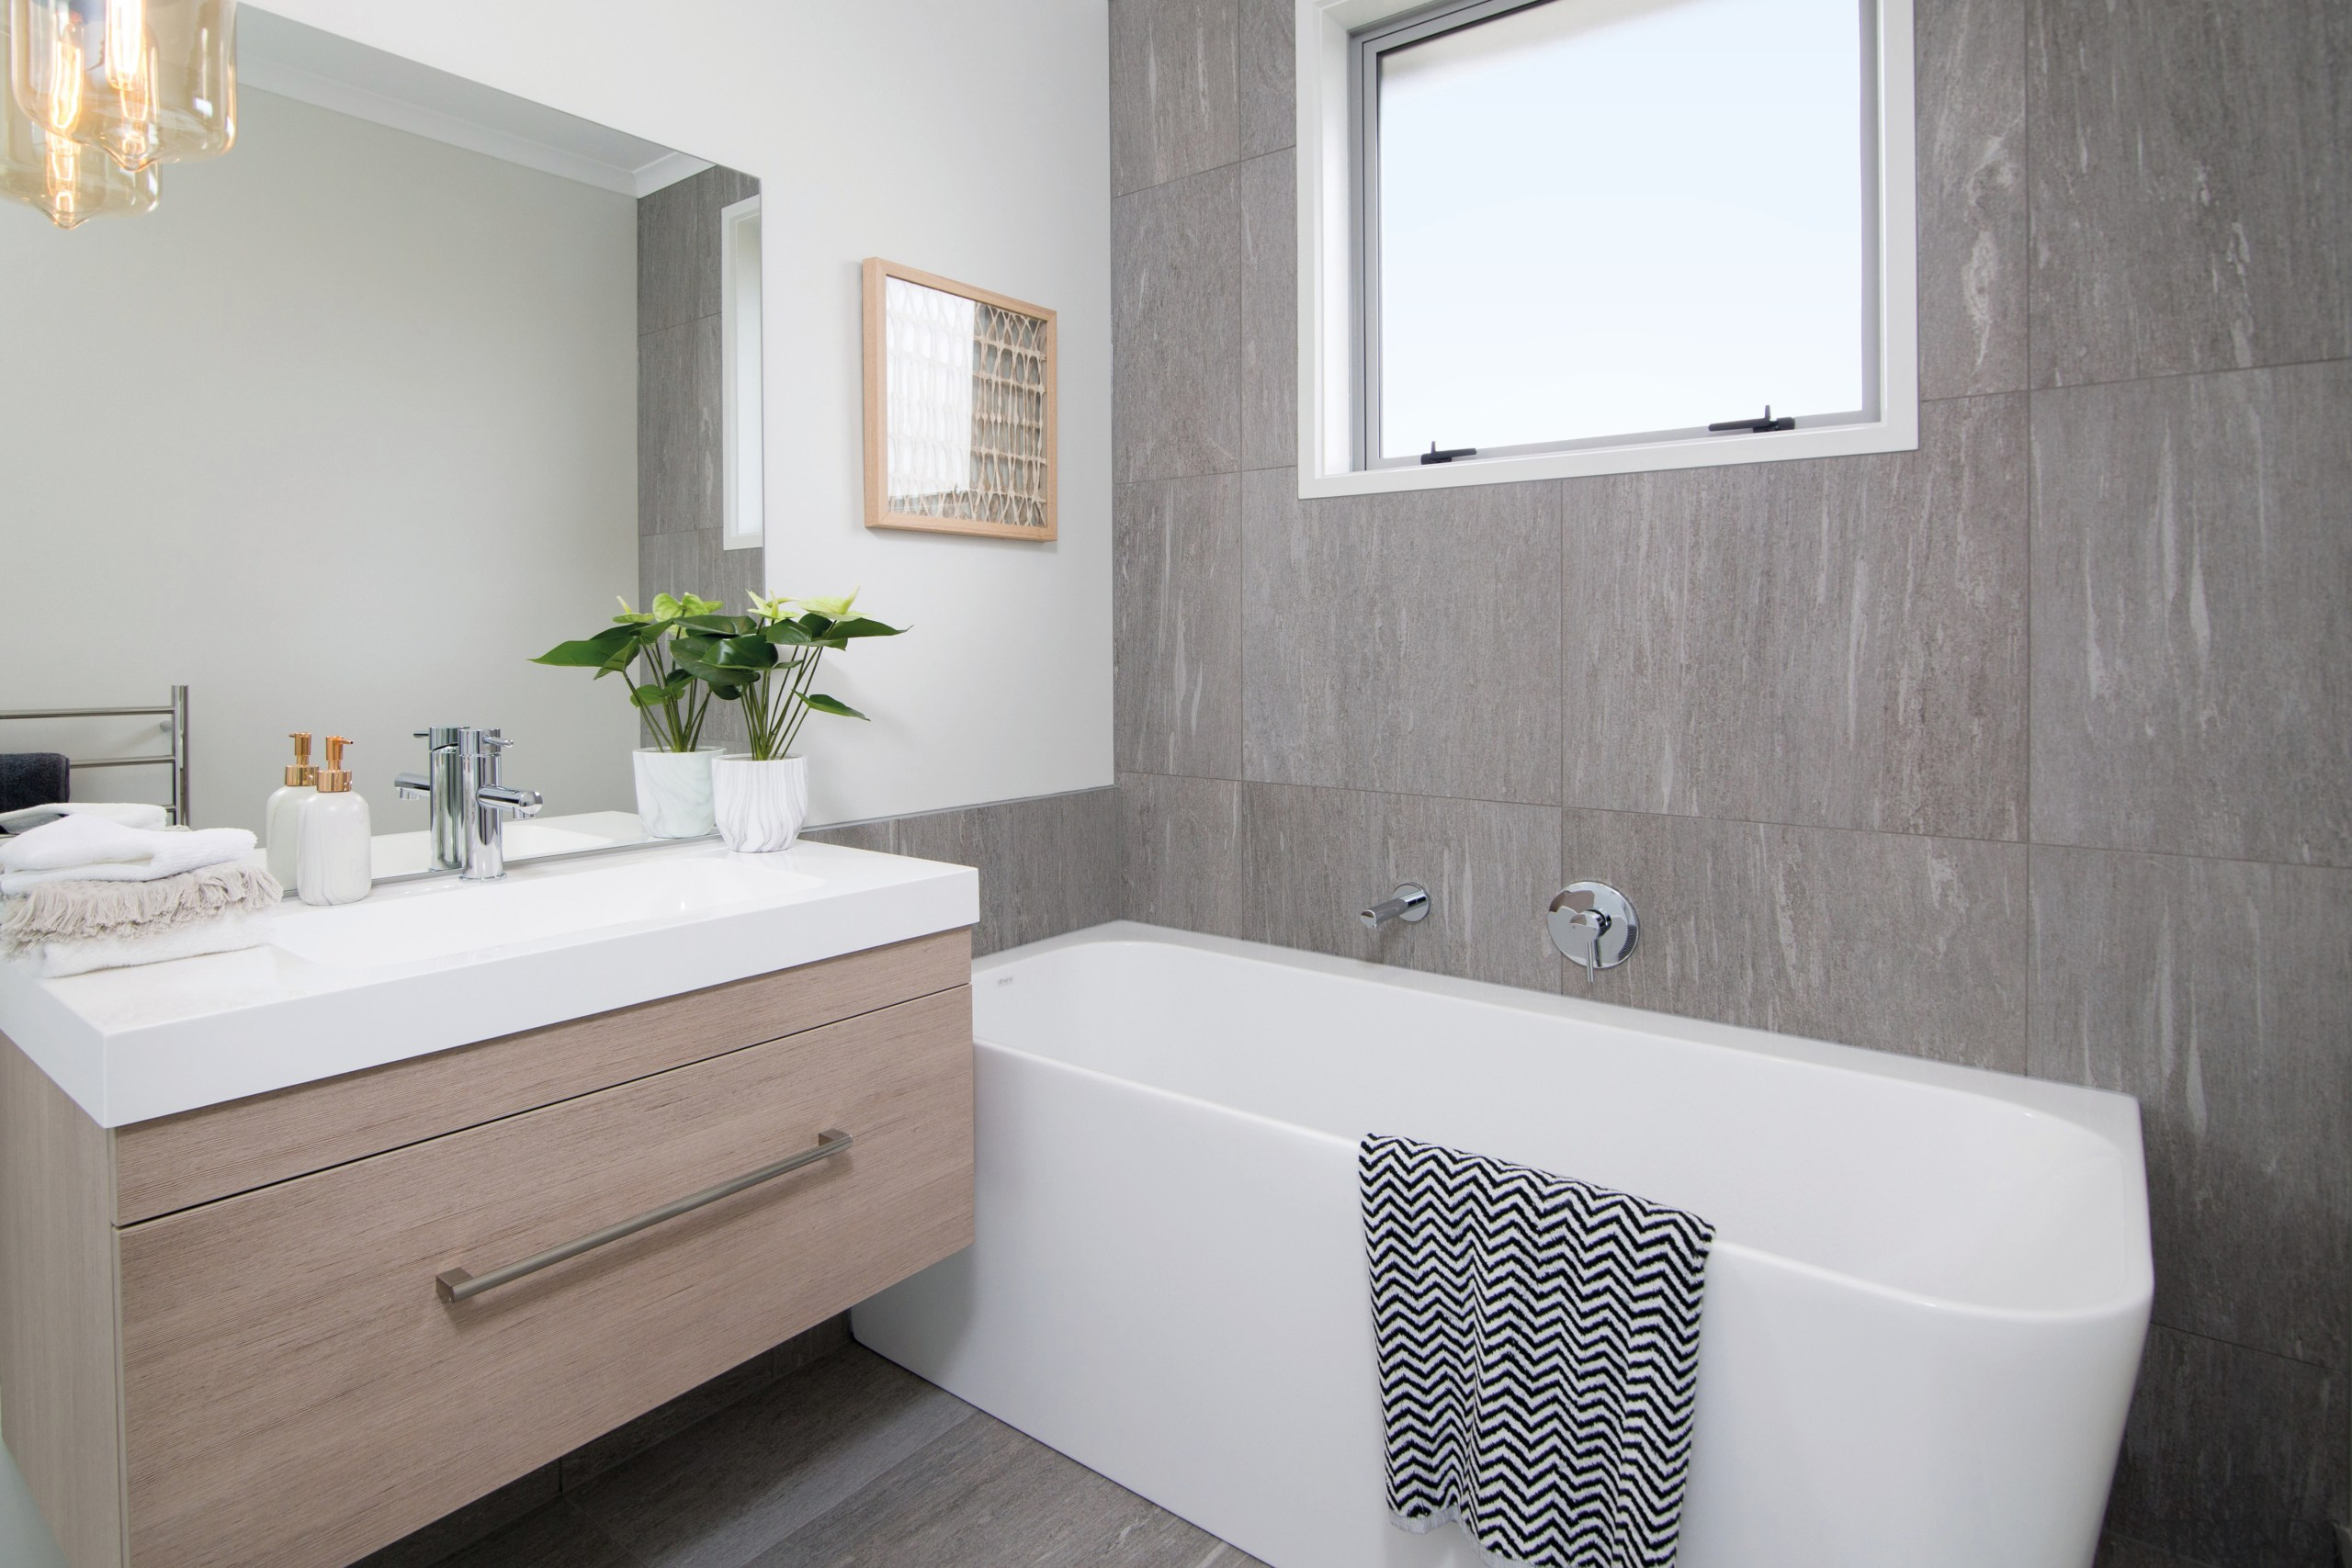 Tilework with the look of slate works well bathroom, bathroom accessory, bathroom cabinet, floor, home, interior design, room, sink, tap, tile, gray, white